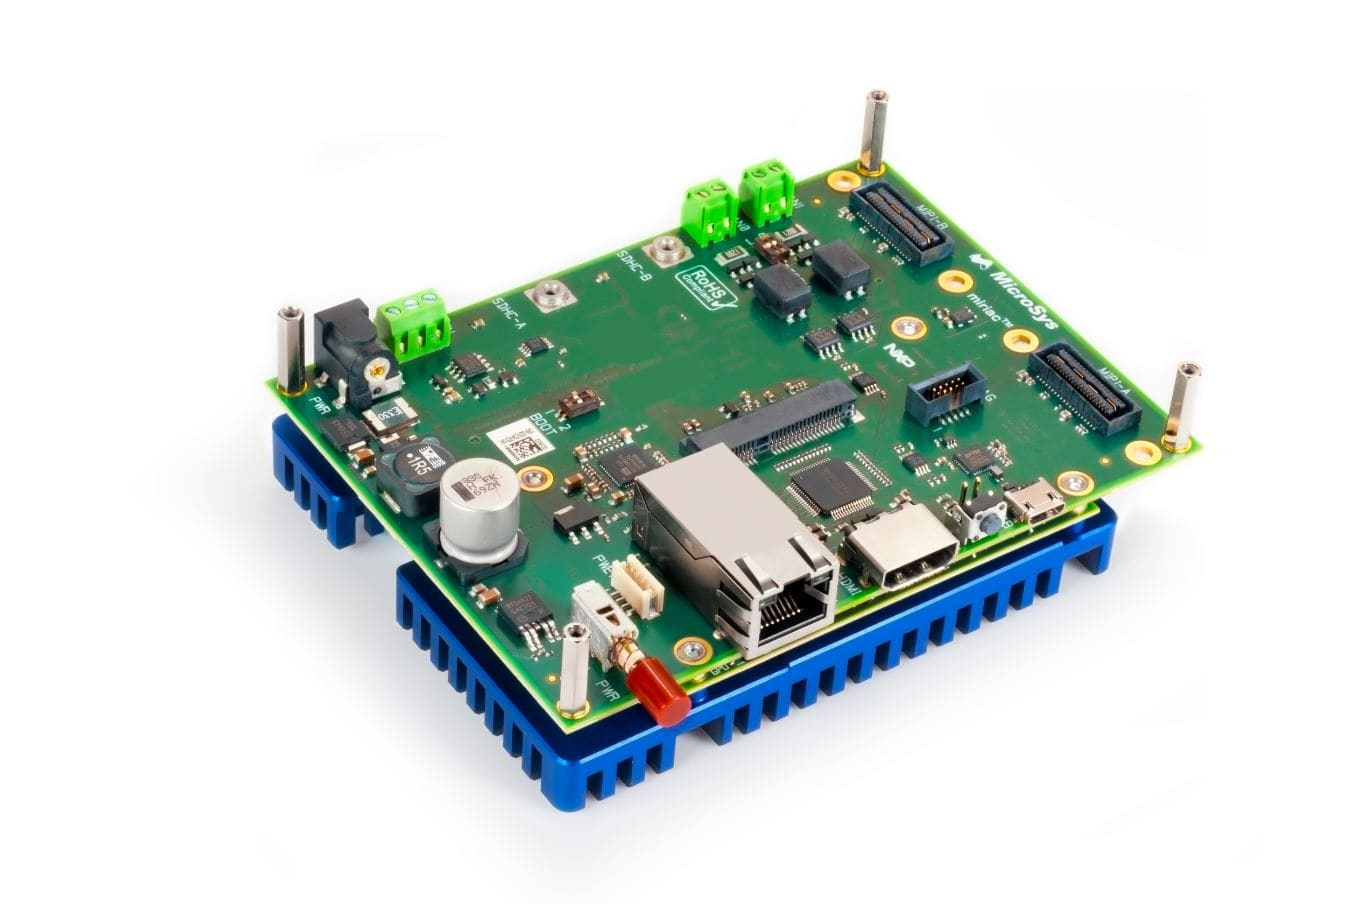 S32V Vision and Sensor Fusion Evaluation Board